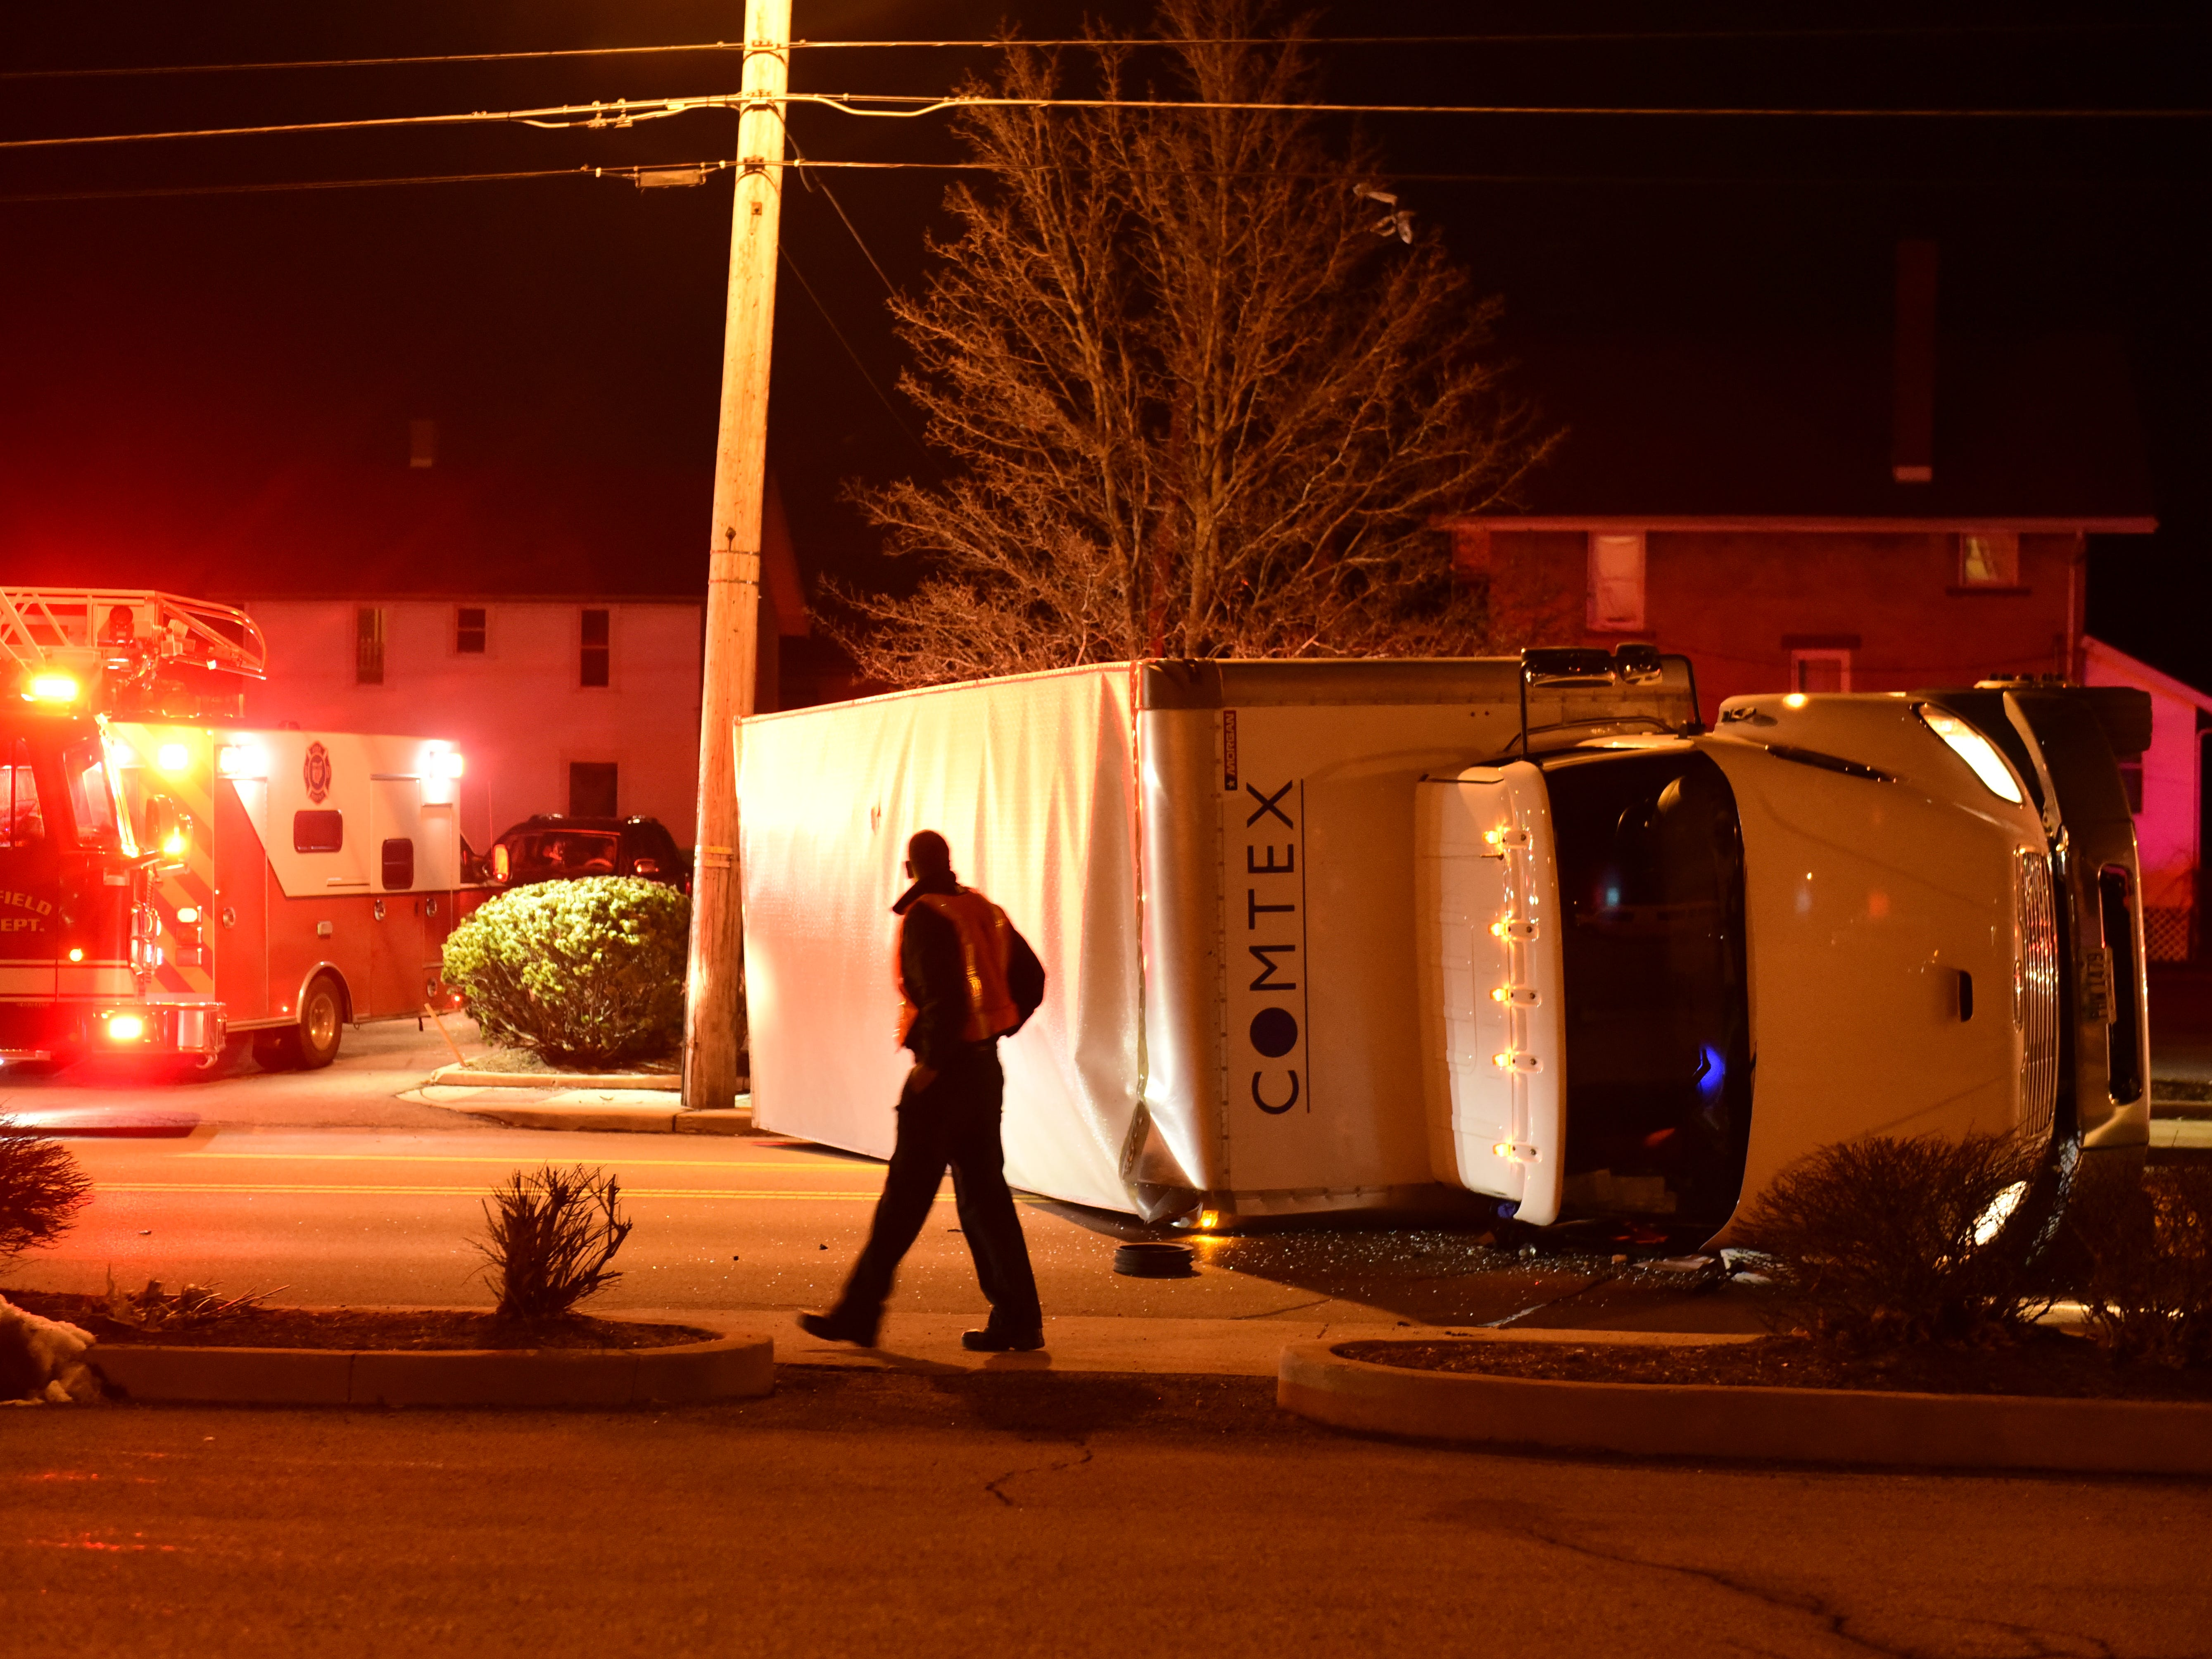 A police officer looks over the damage after a tractor-trailer rolled on South Main Street about 9:30 p.m. Friday.